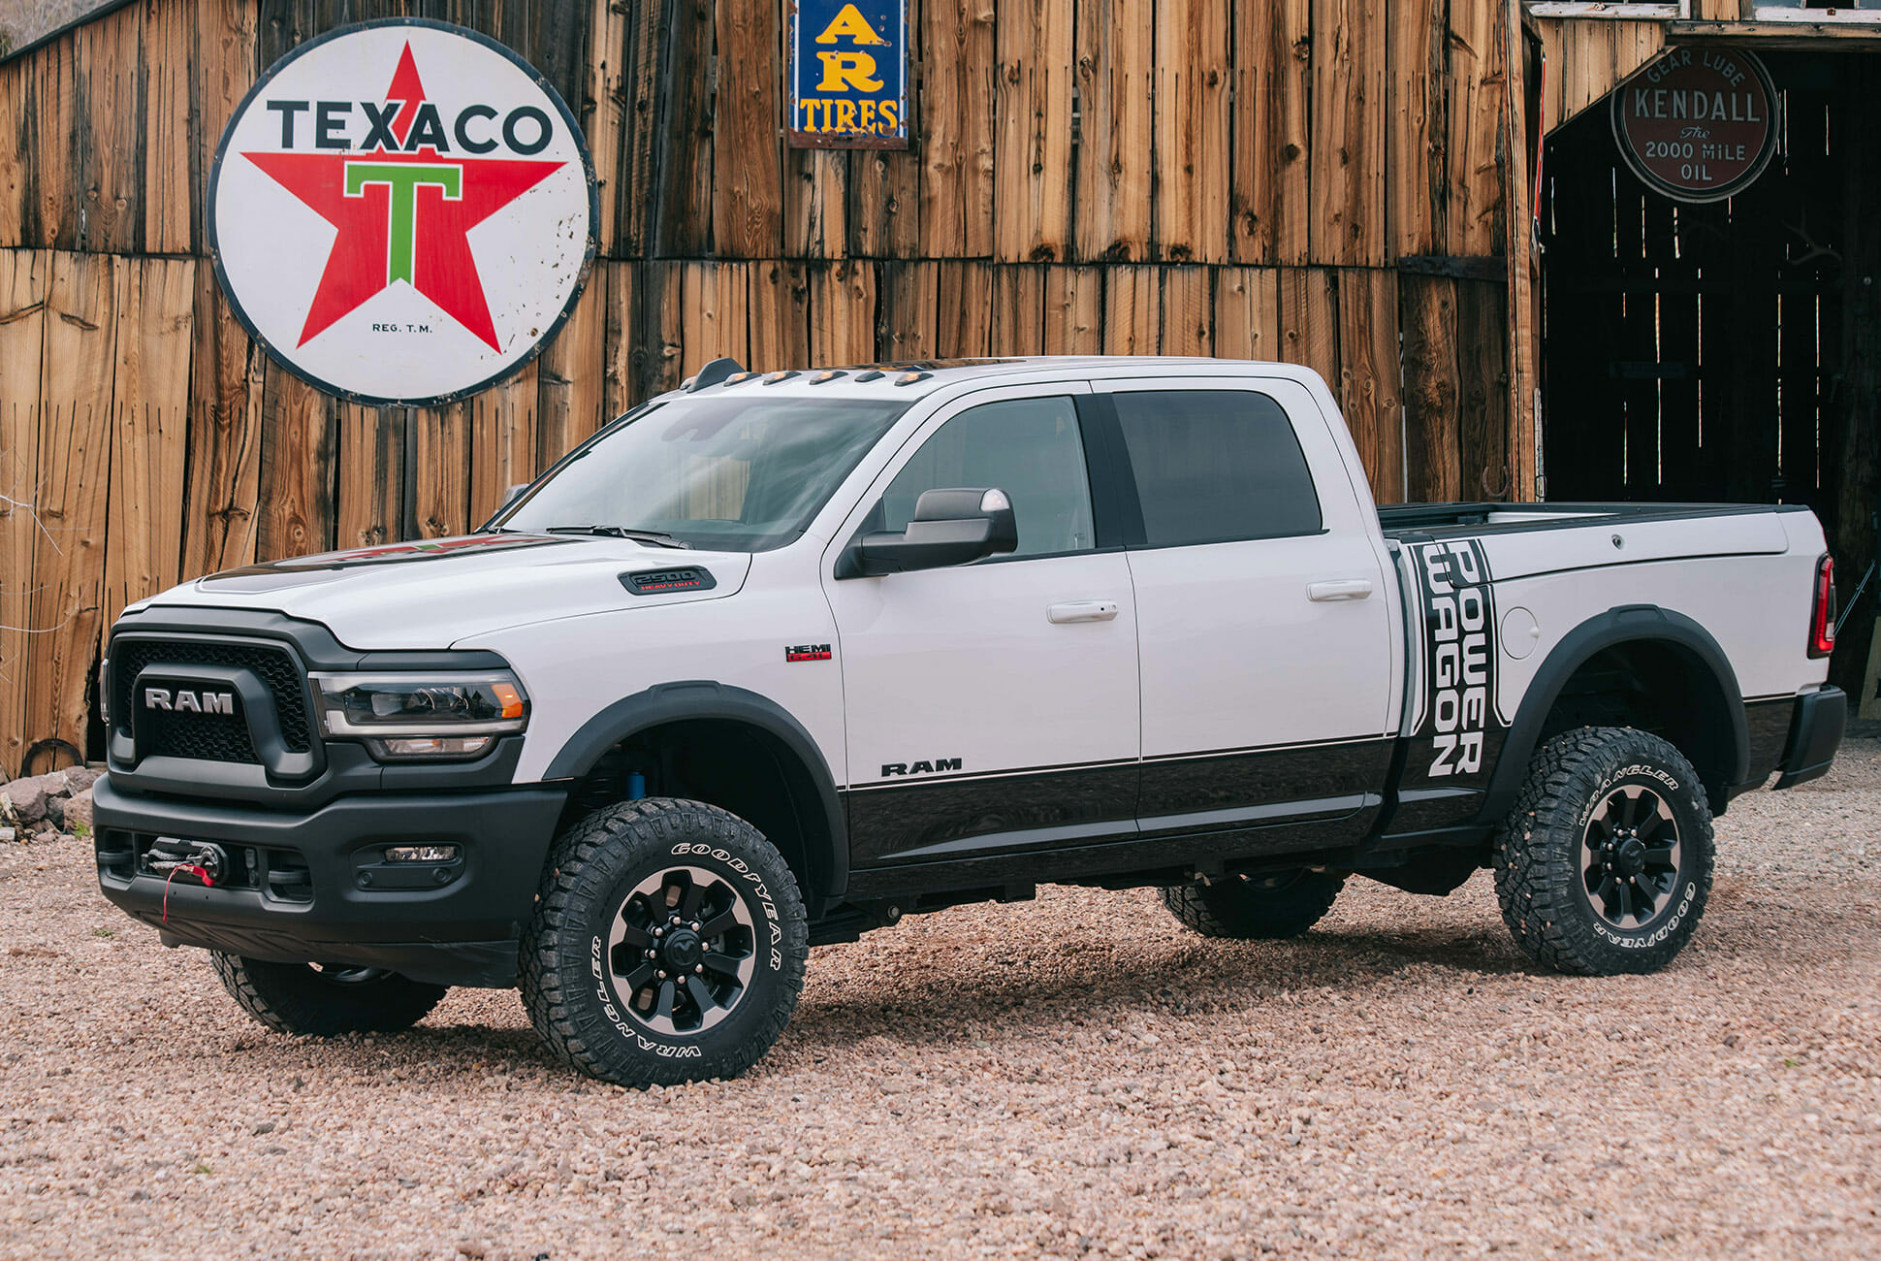 The 5 Ram Power Wagon Is the Most Capable Pickup You Can Buy ..